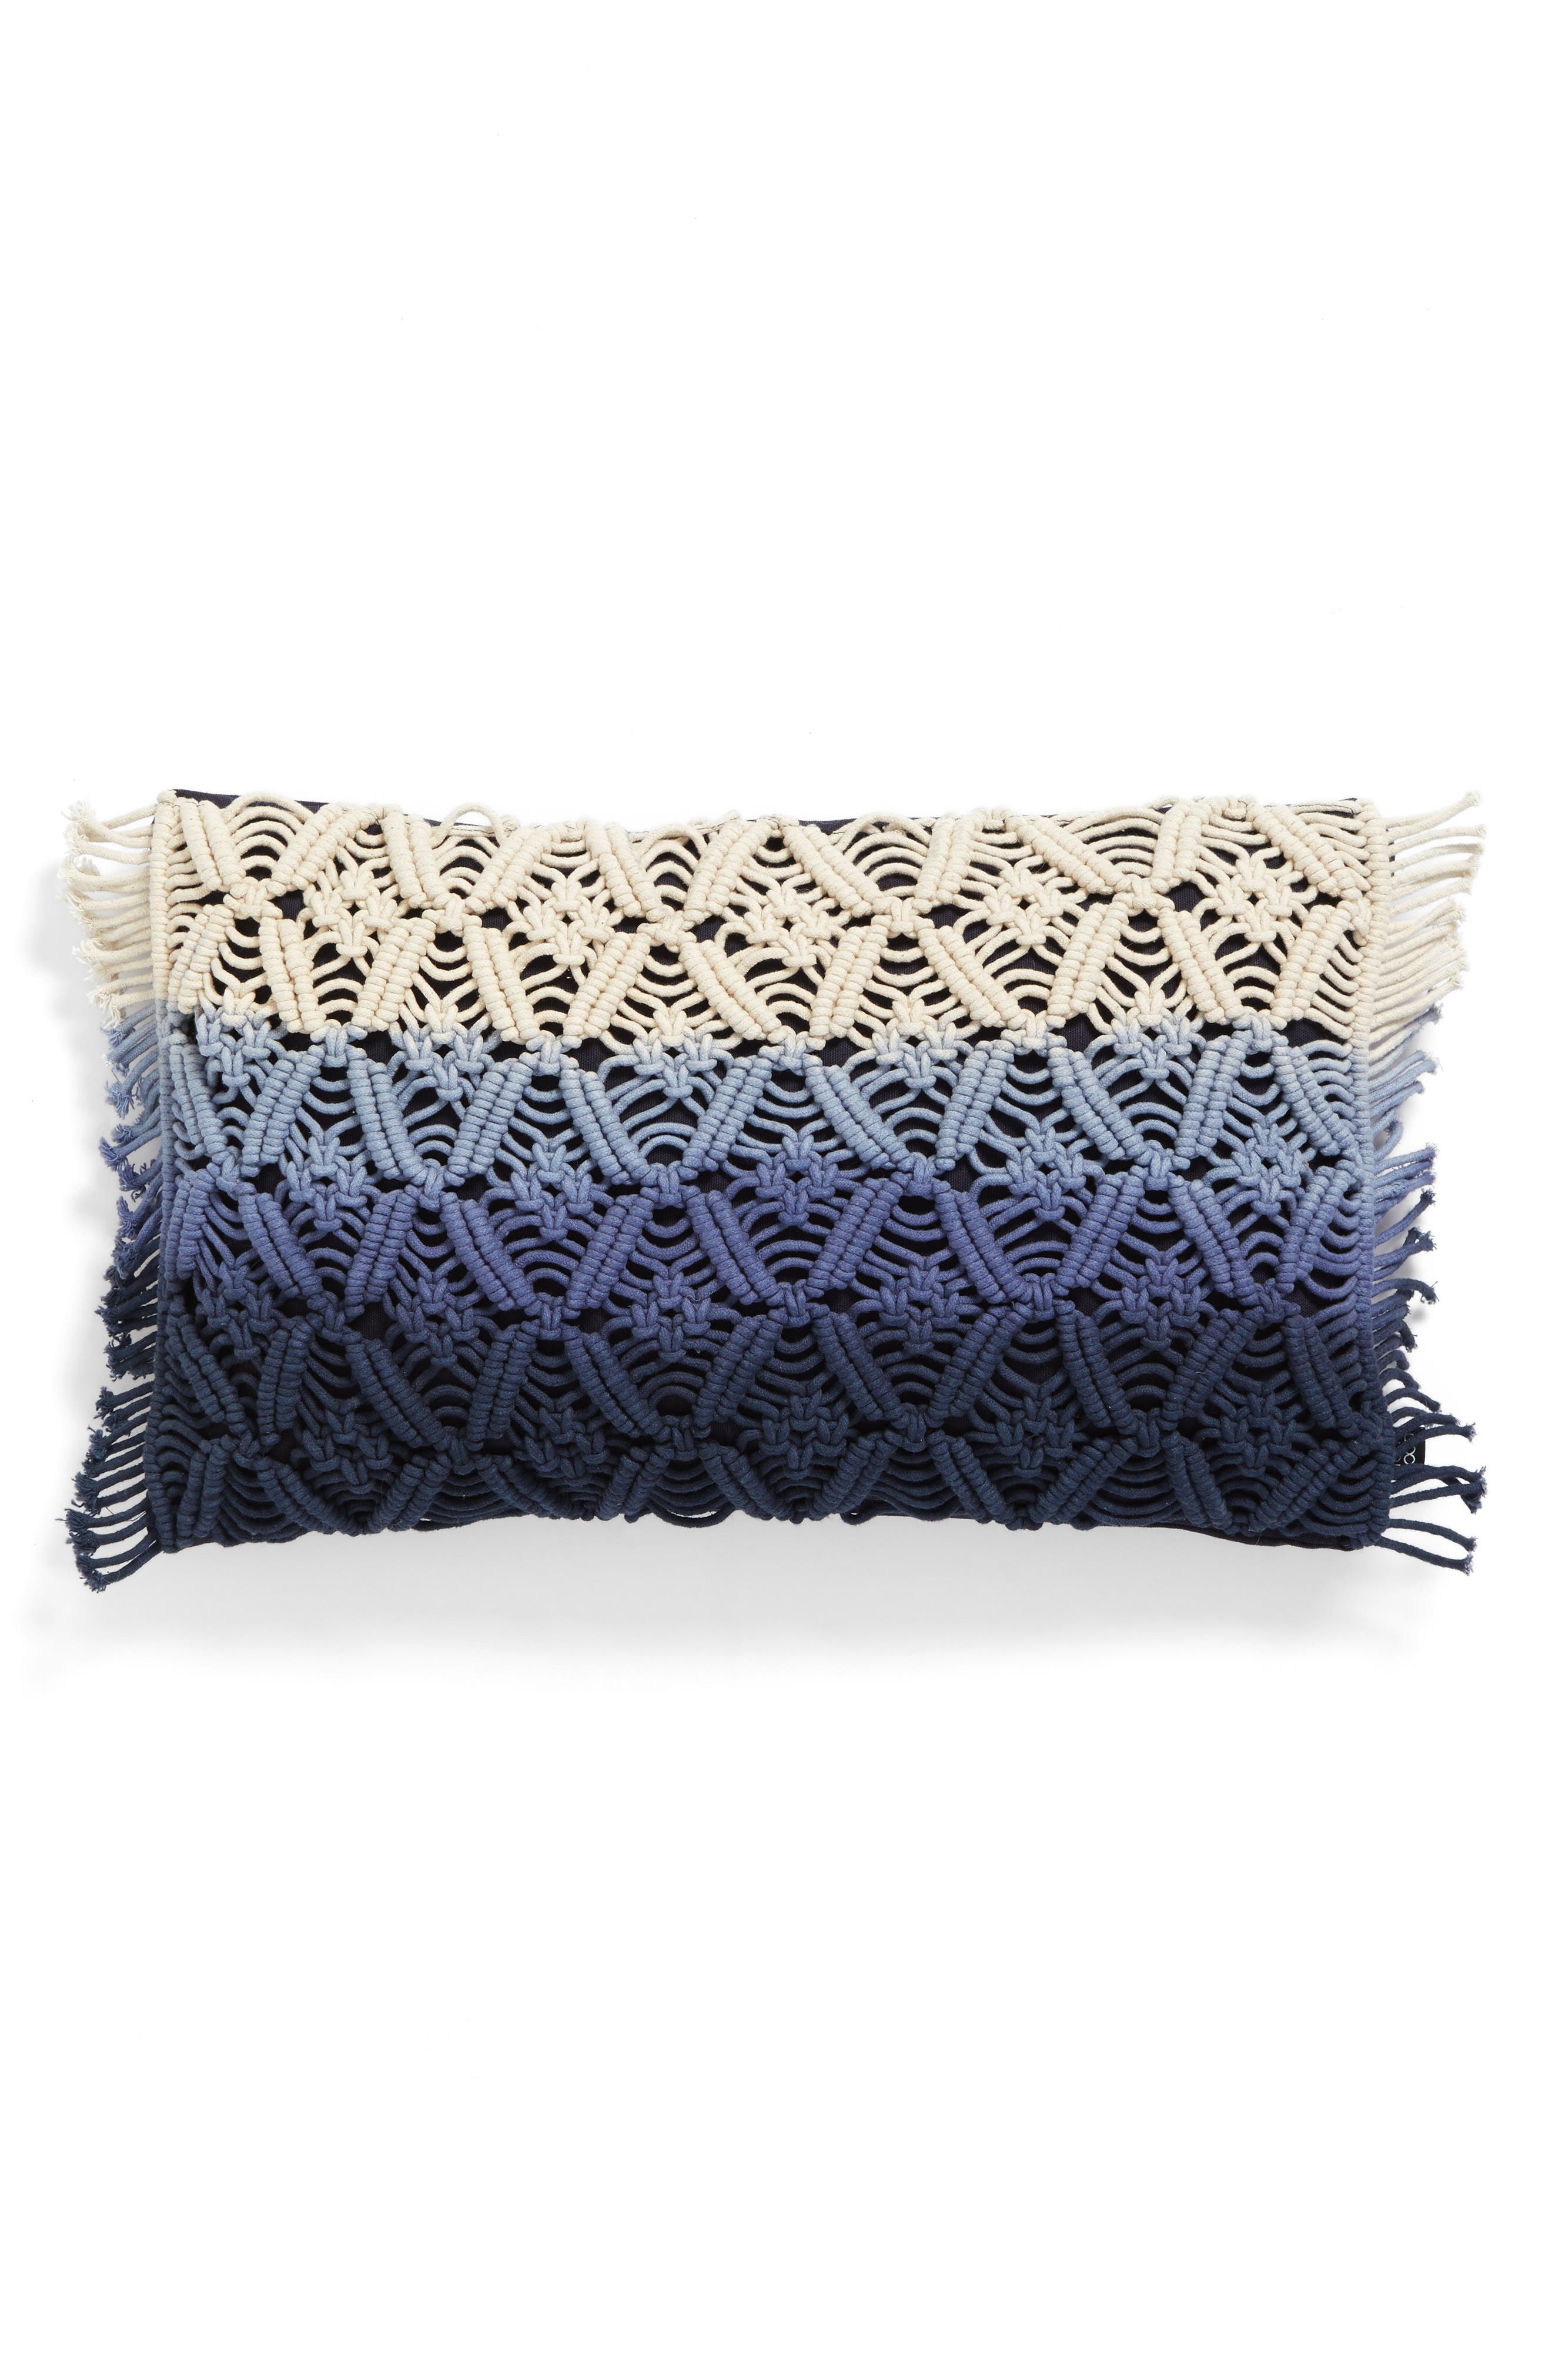 Dip Dye Pillow,                             Main thumbnail 1, color,                             Blue/ White